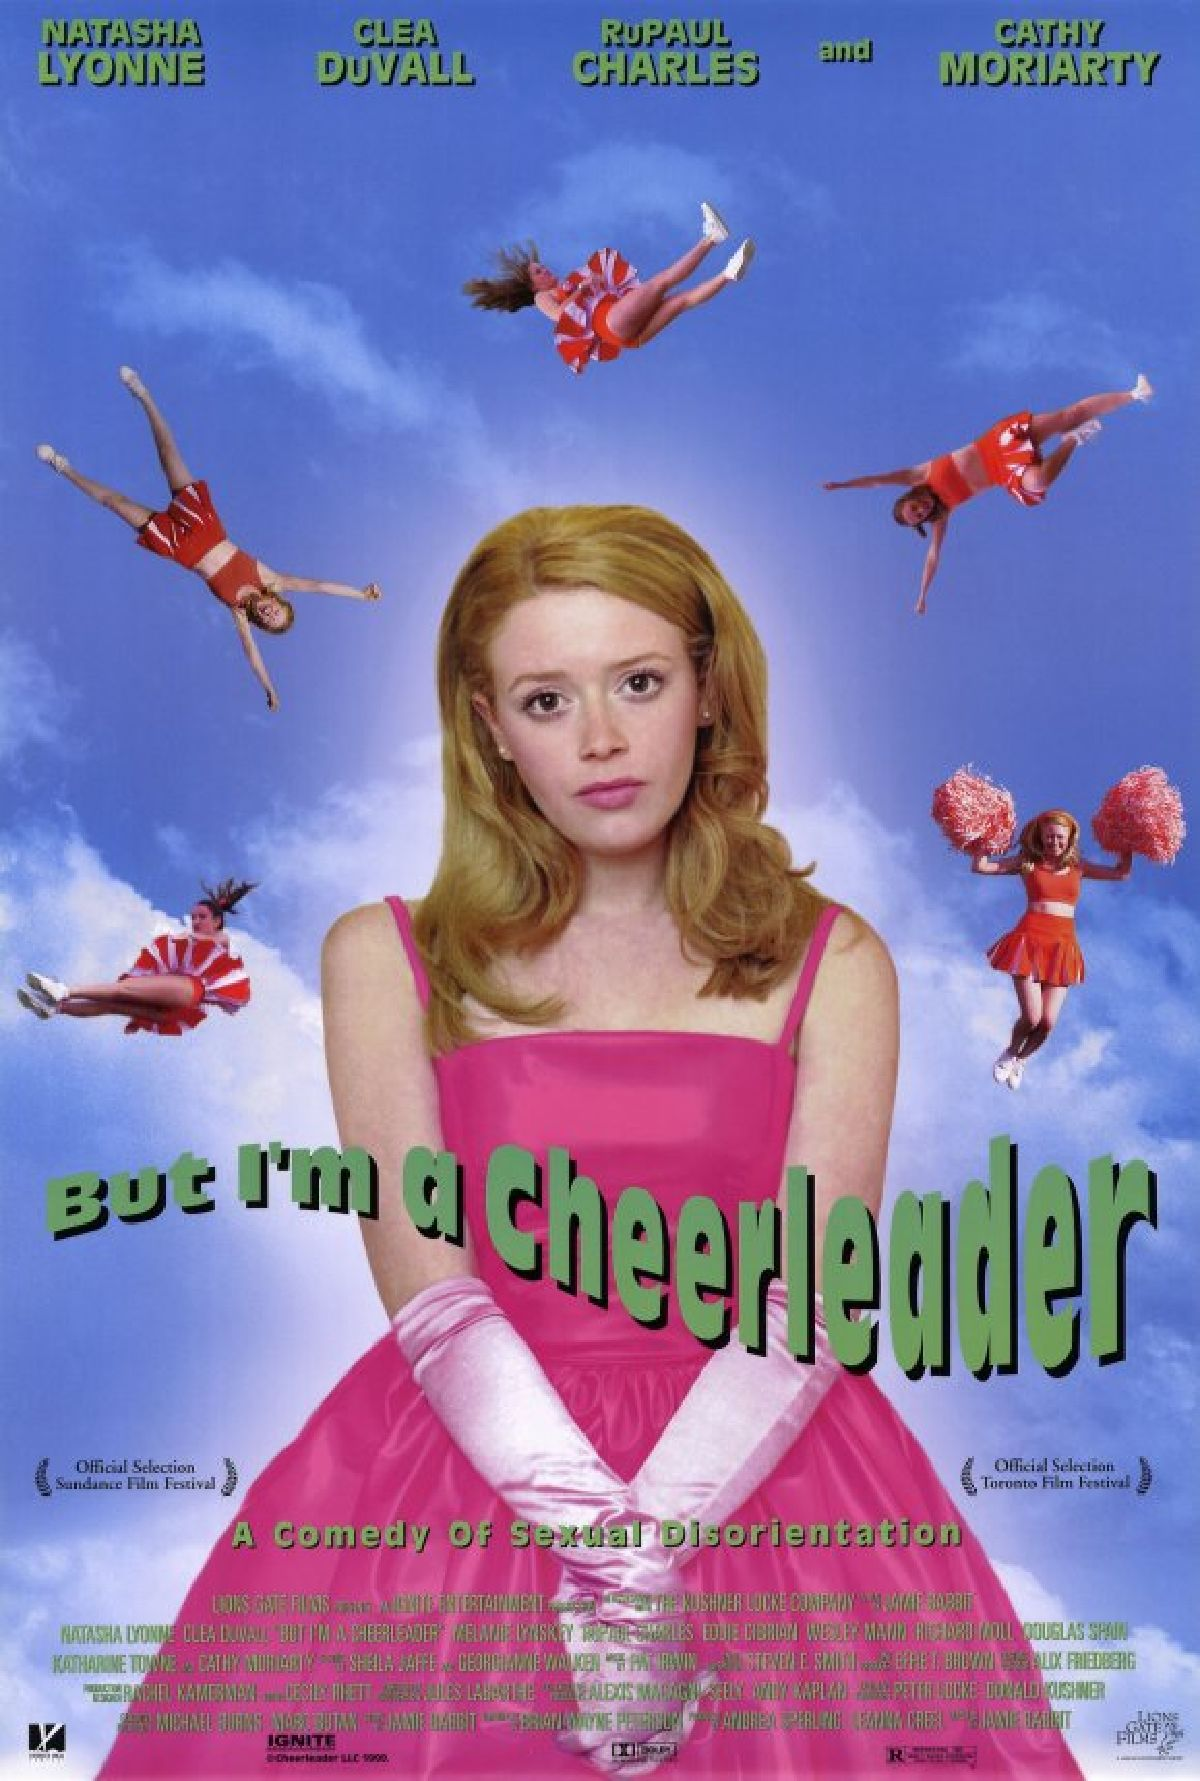 'But I'm A Cheerleader' movie poster